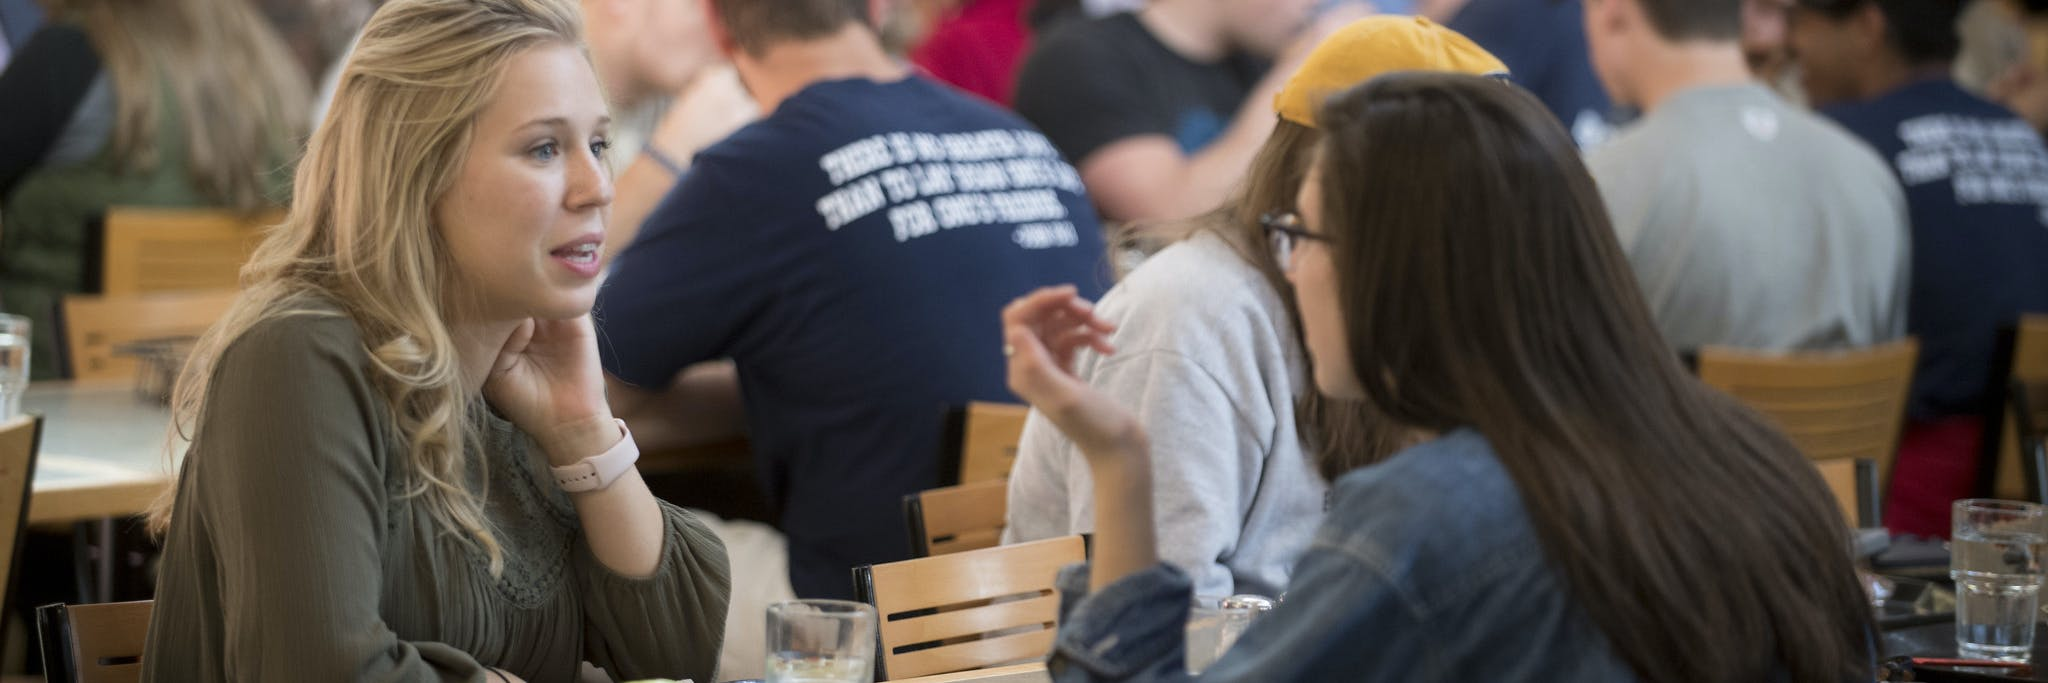 Students eating in dining center at Bethel University